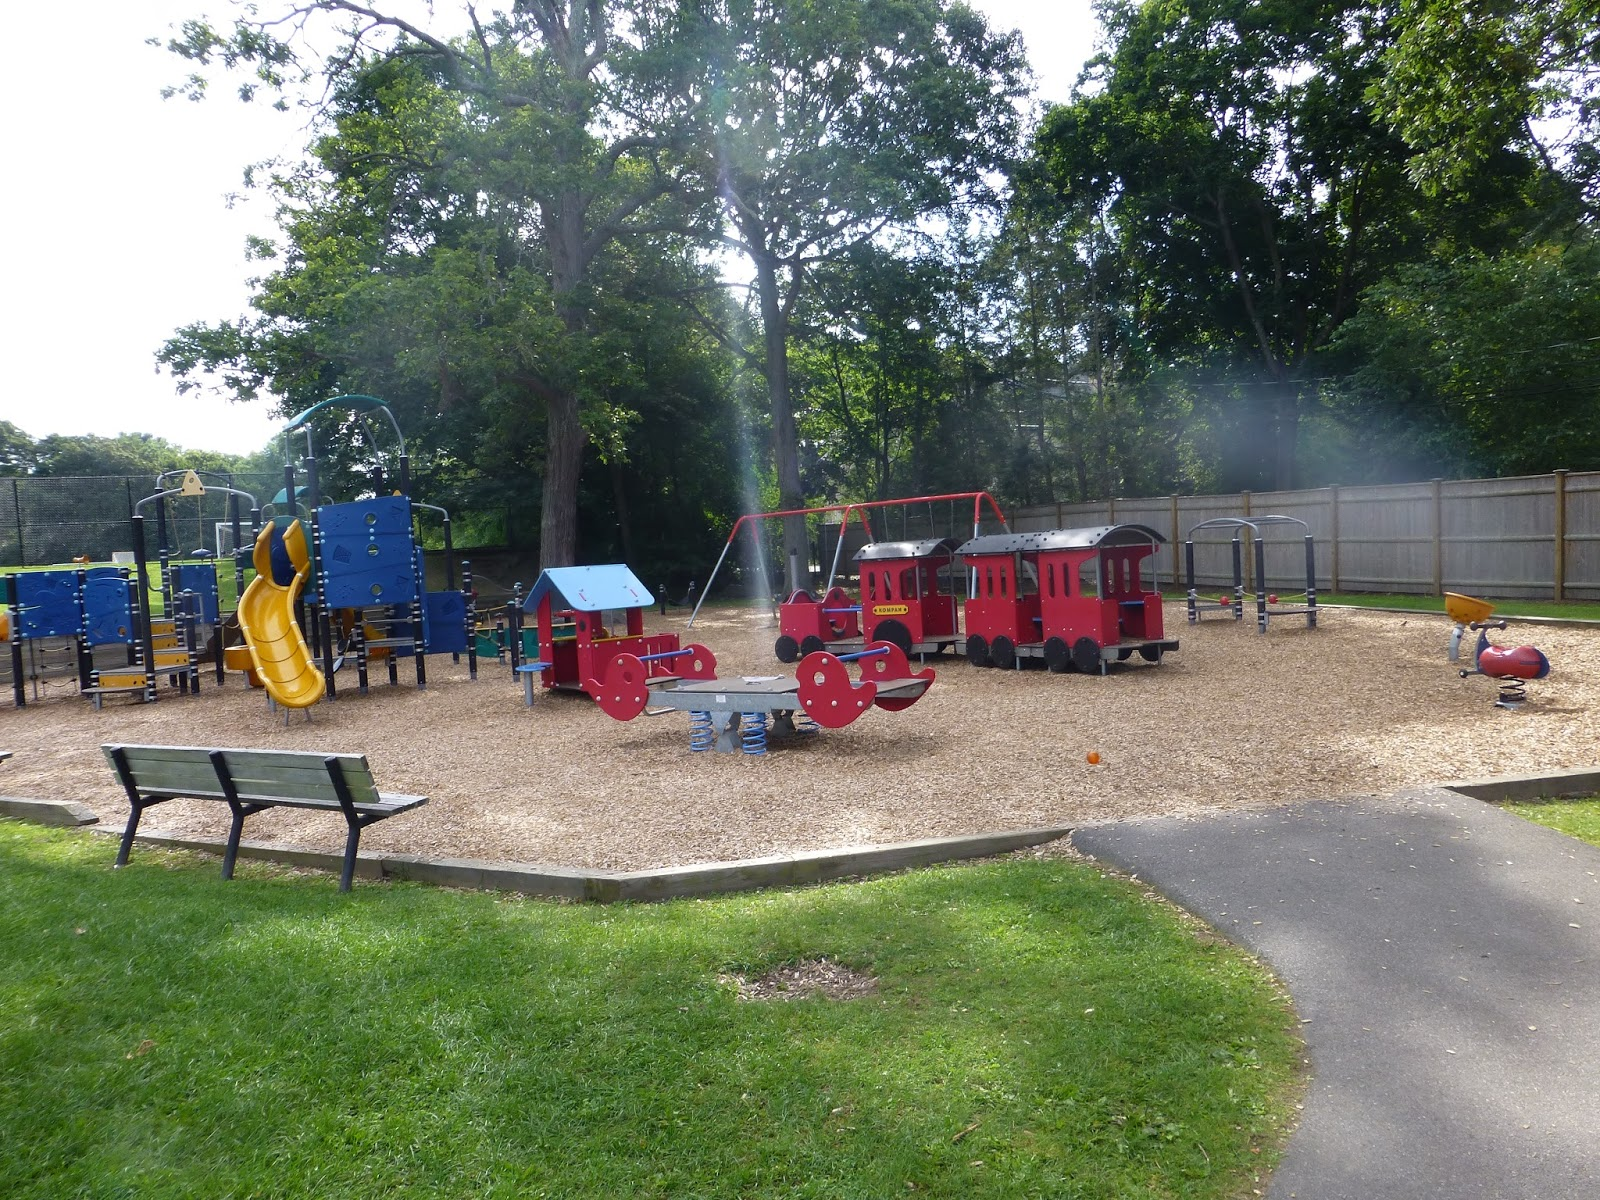 visiting brookline playgrounds soule playground splash park and